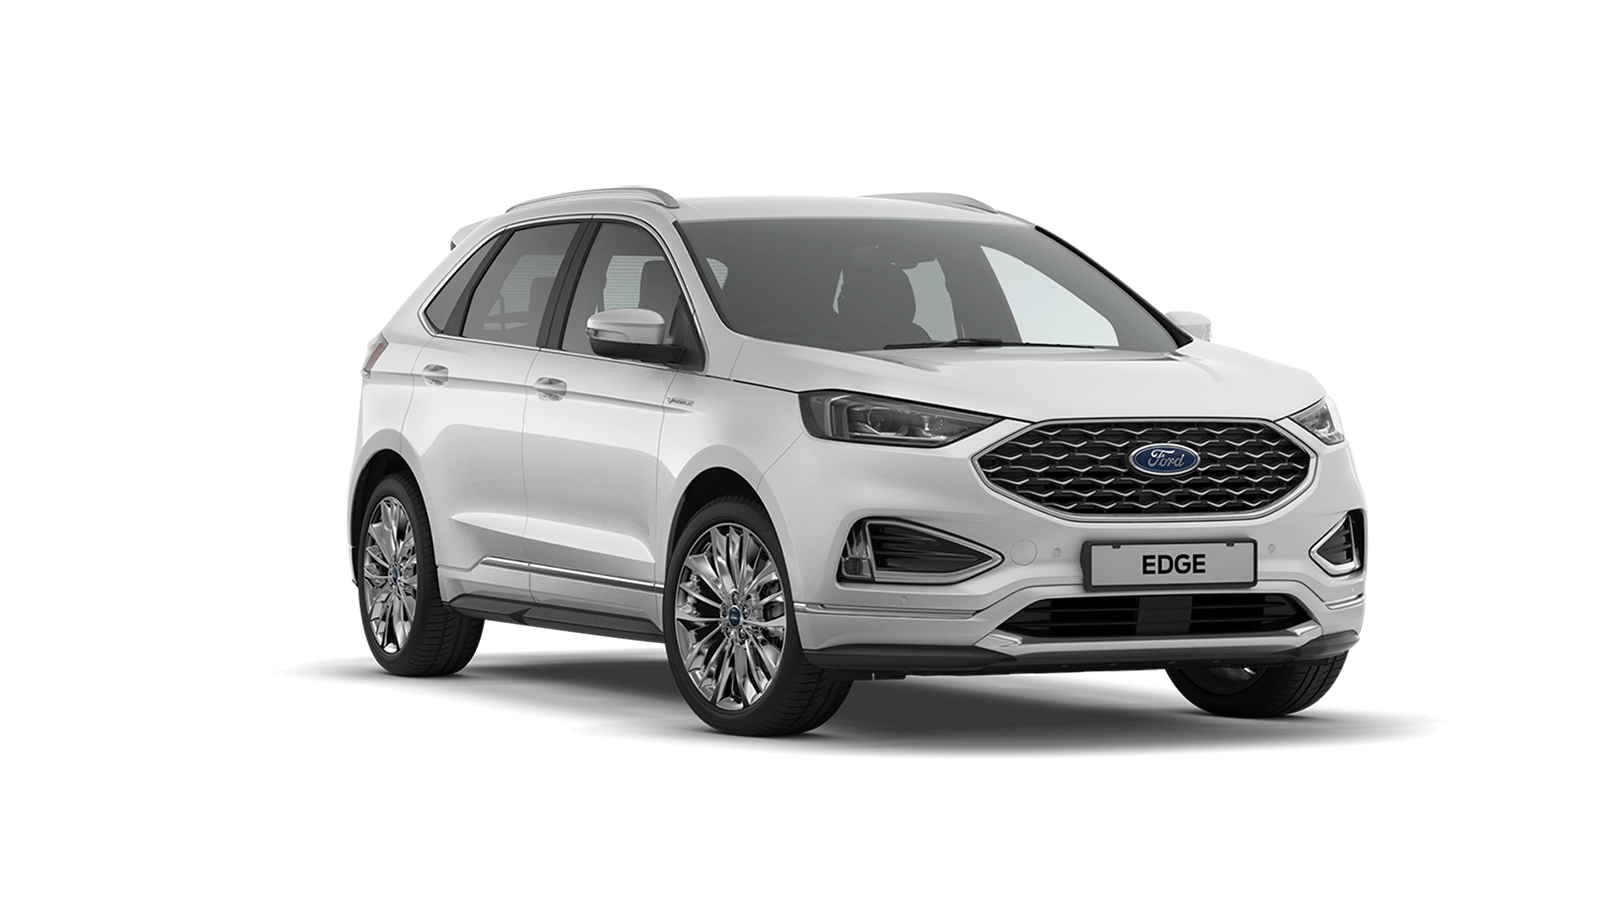 NEW EDGE Vignale 5 Door in White Platinum